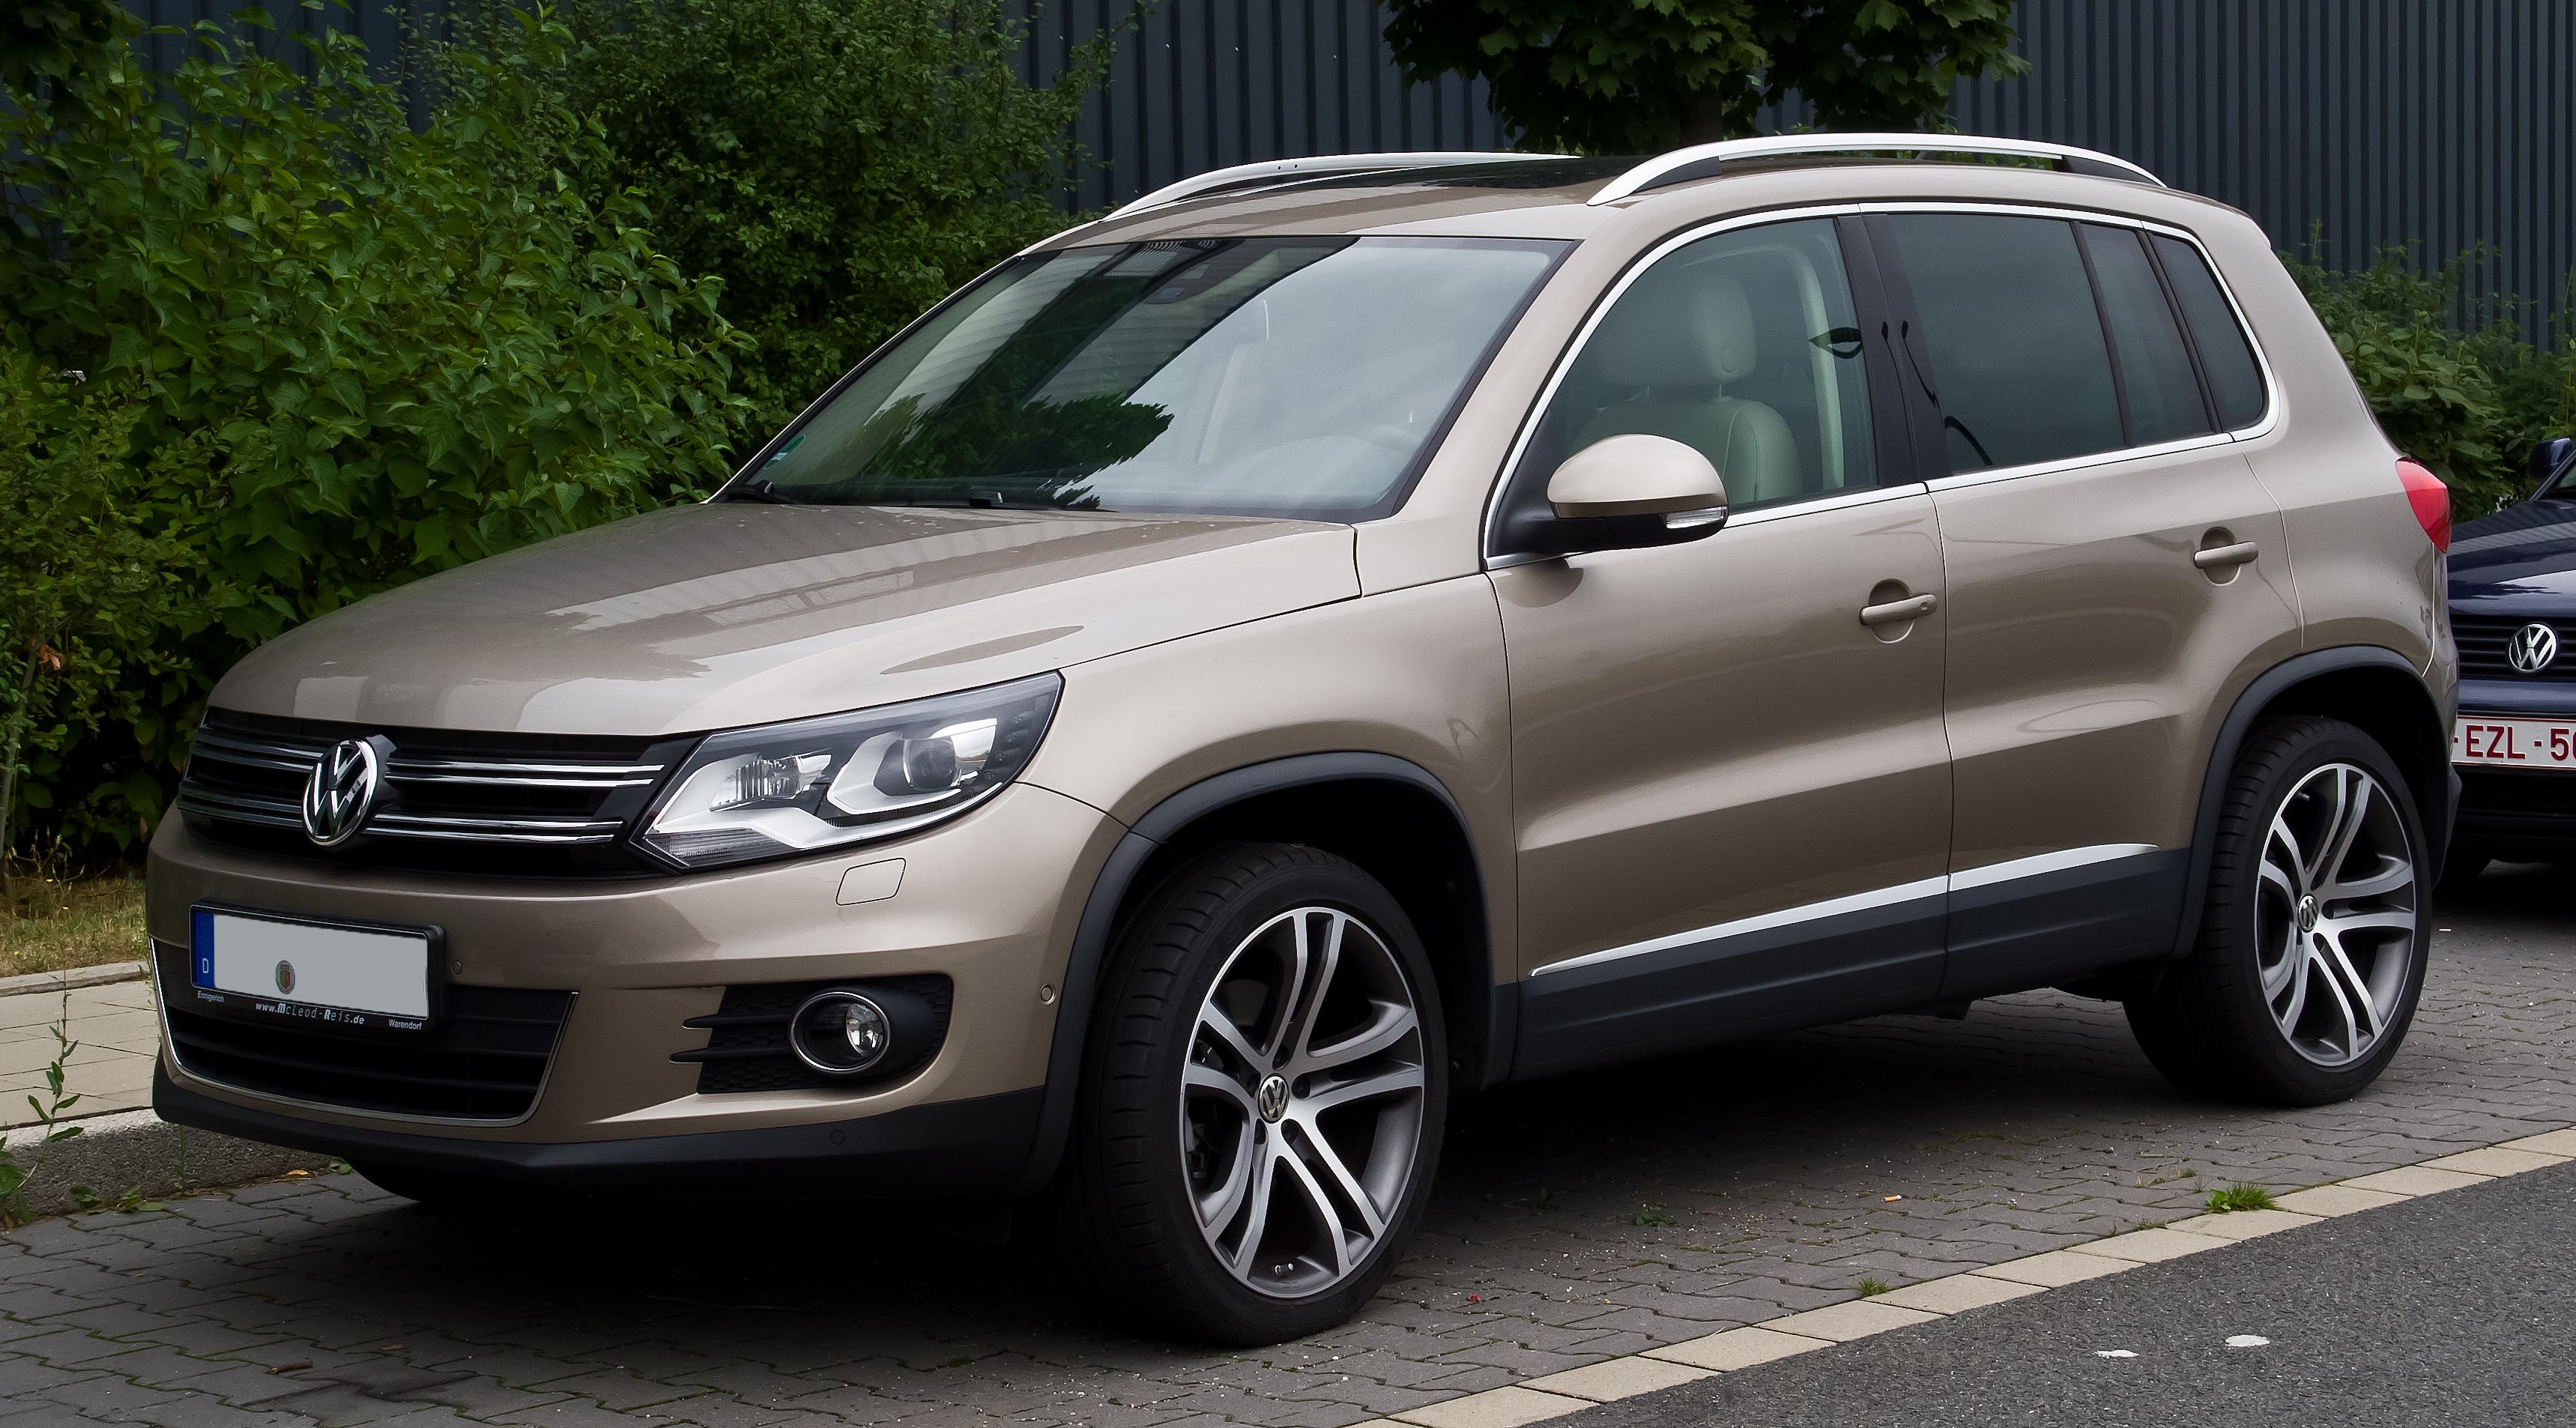 vw tiguan wiki. Black Bedroom Furniture Sets. Home Design Ideas